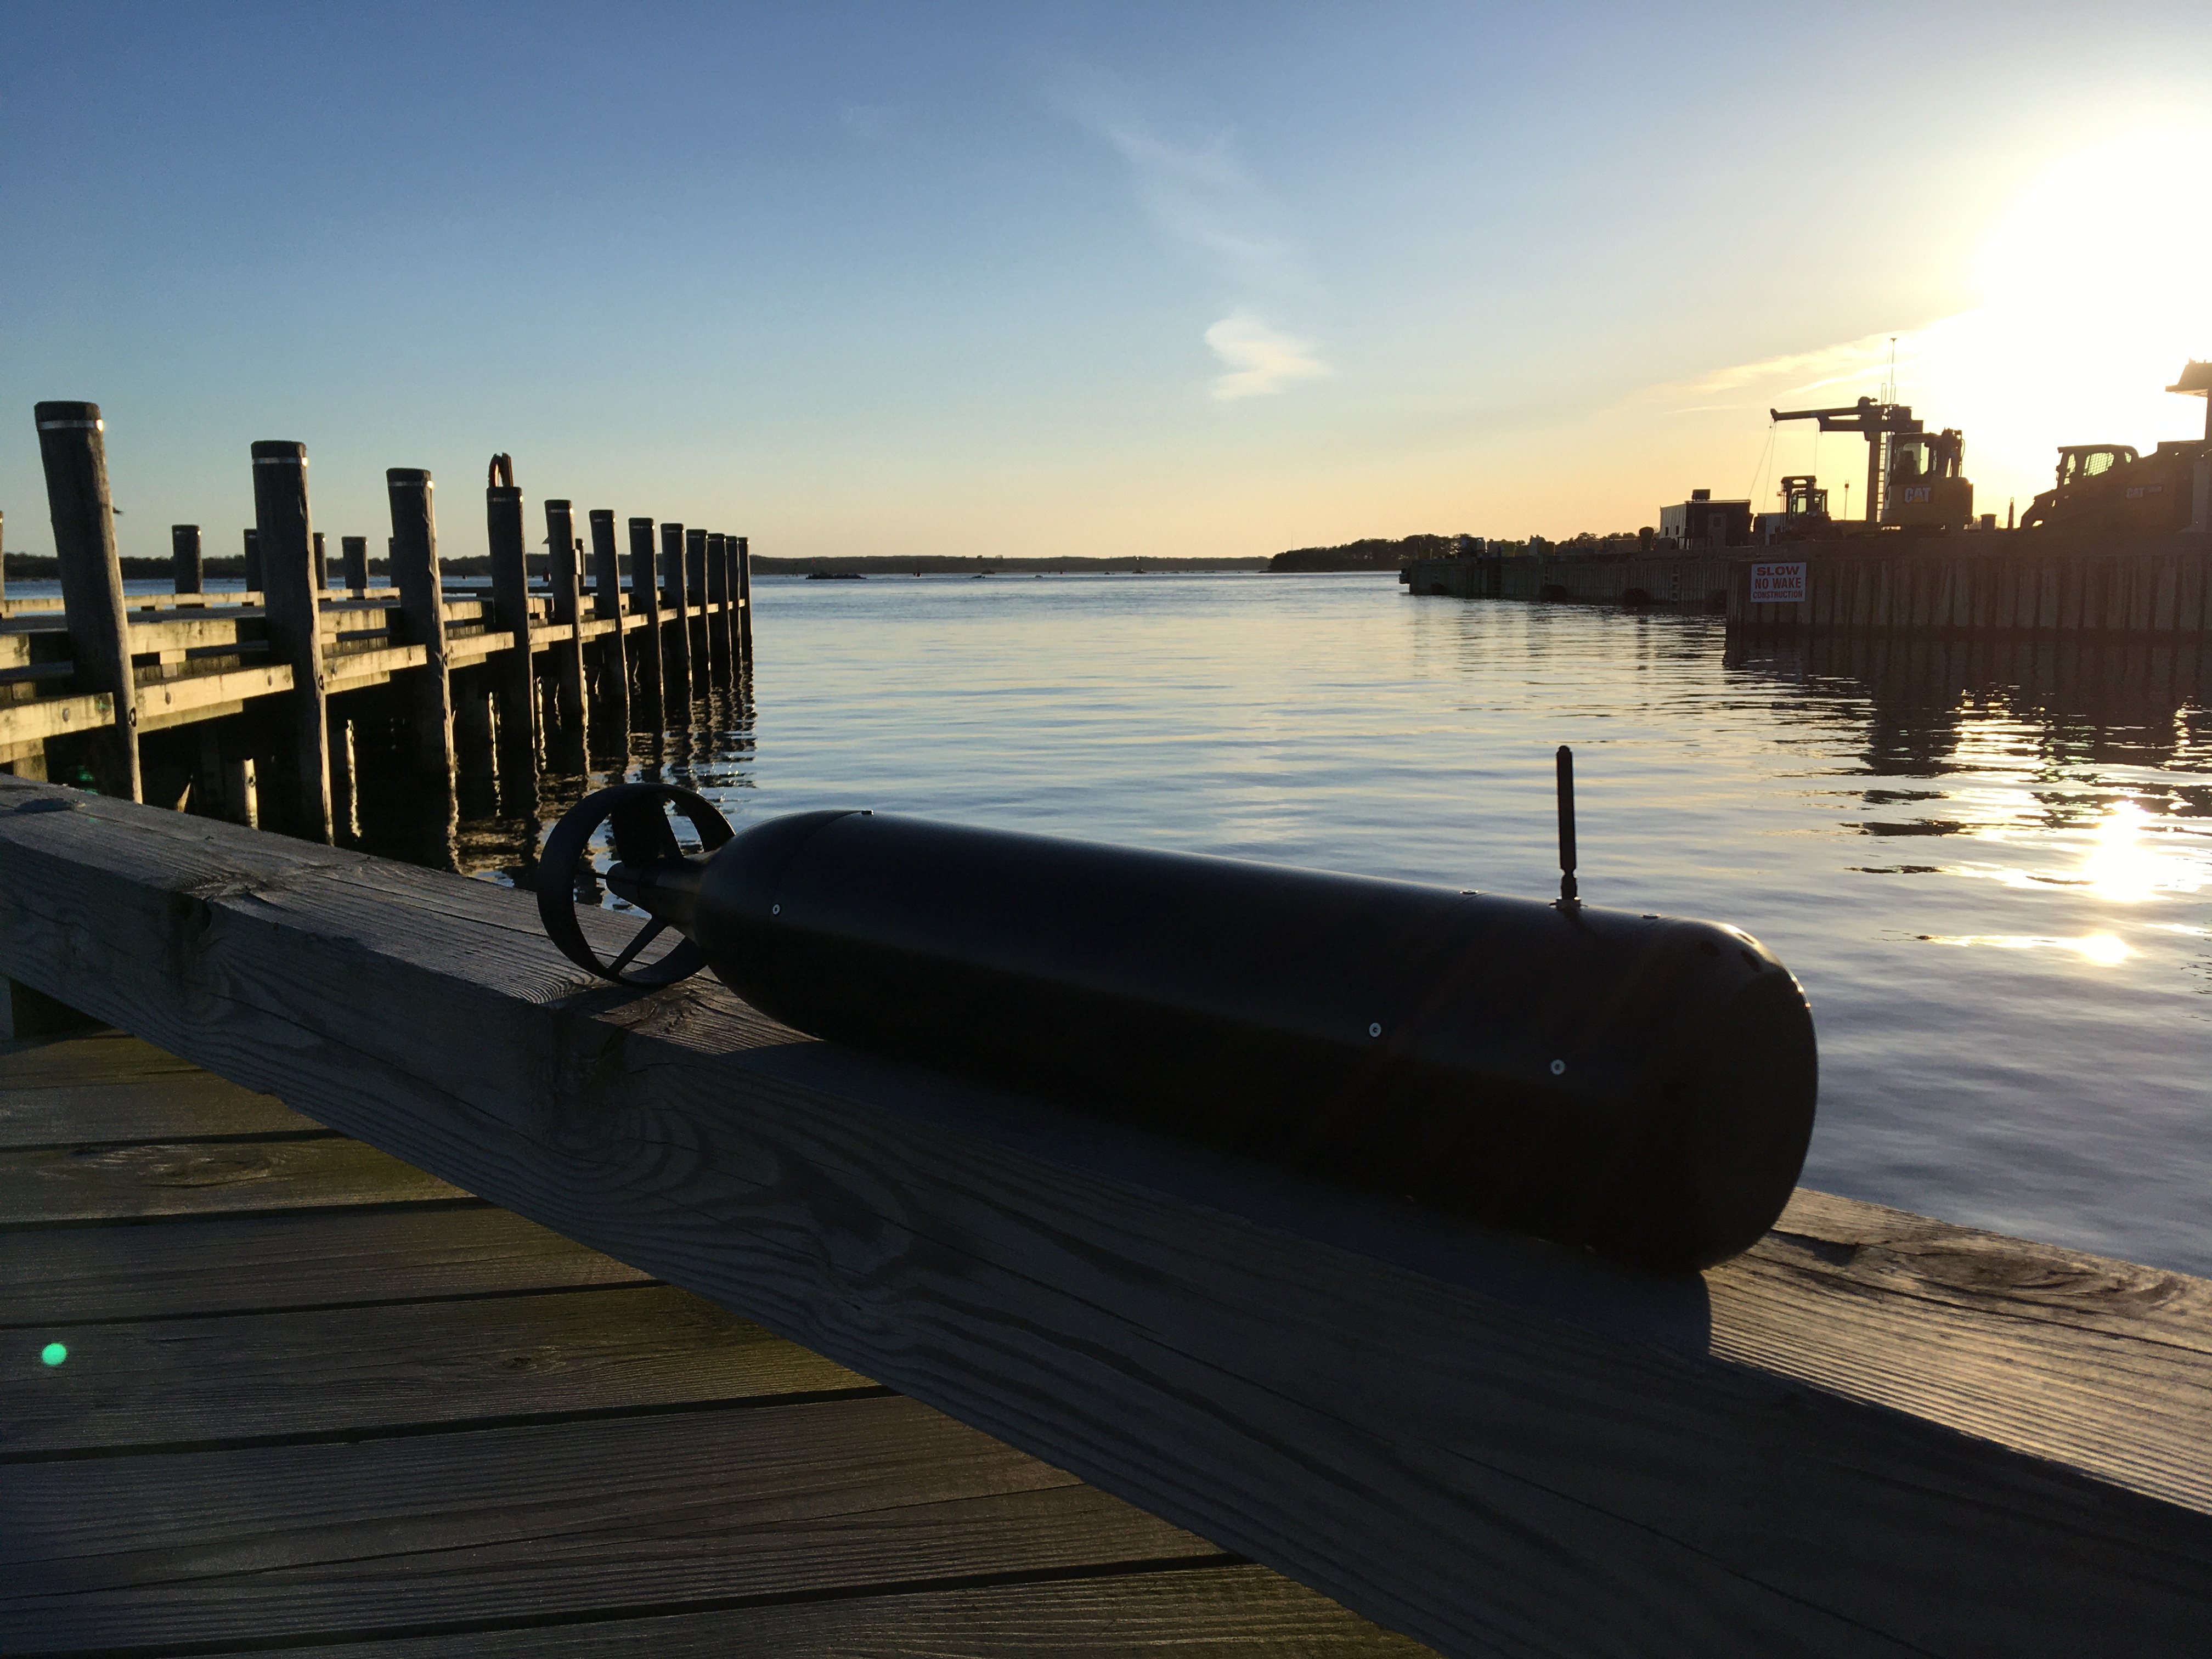 Thruster mounted on a test hull to support the development of vision-based navigation and station keeping (courtesy of ARAMADA Marine Robotics, Inc.)